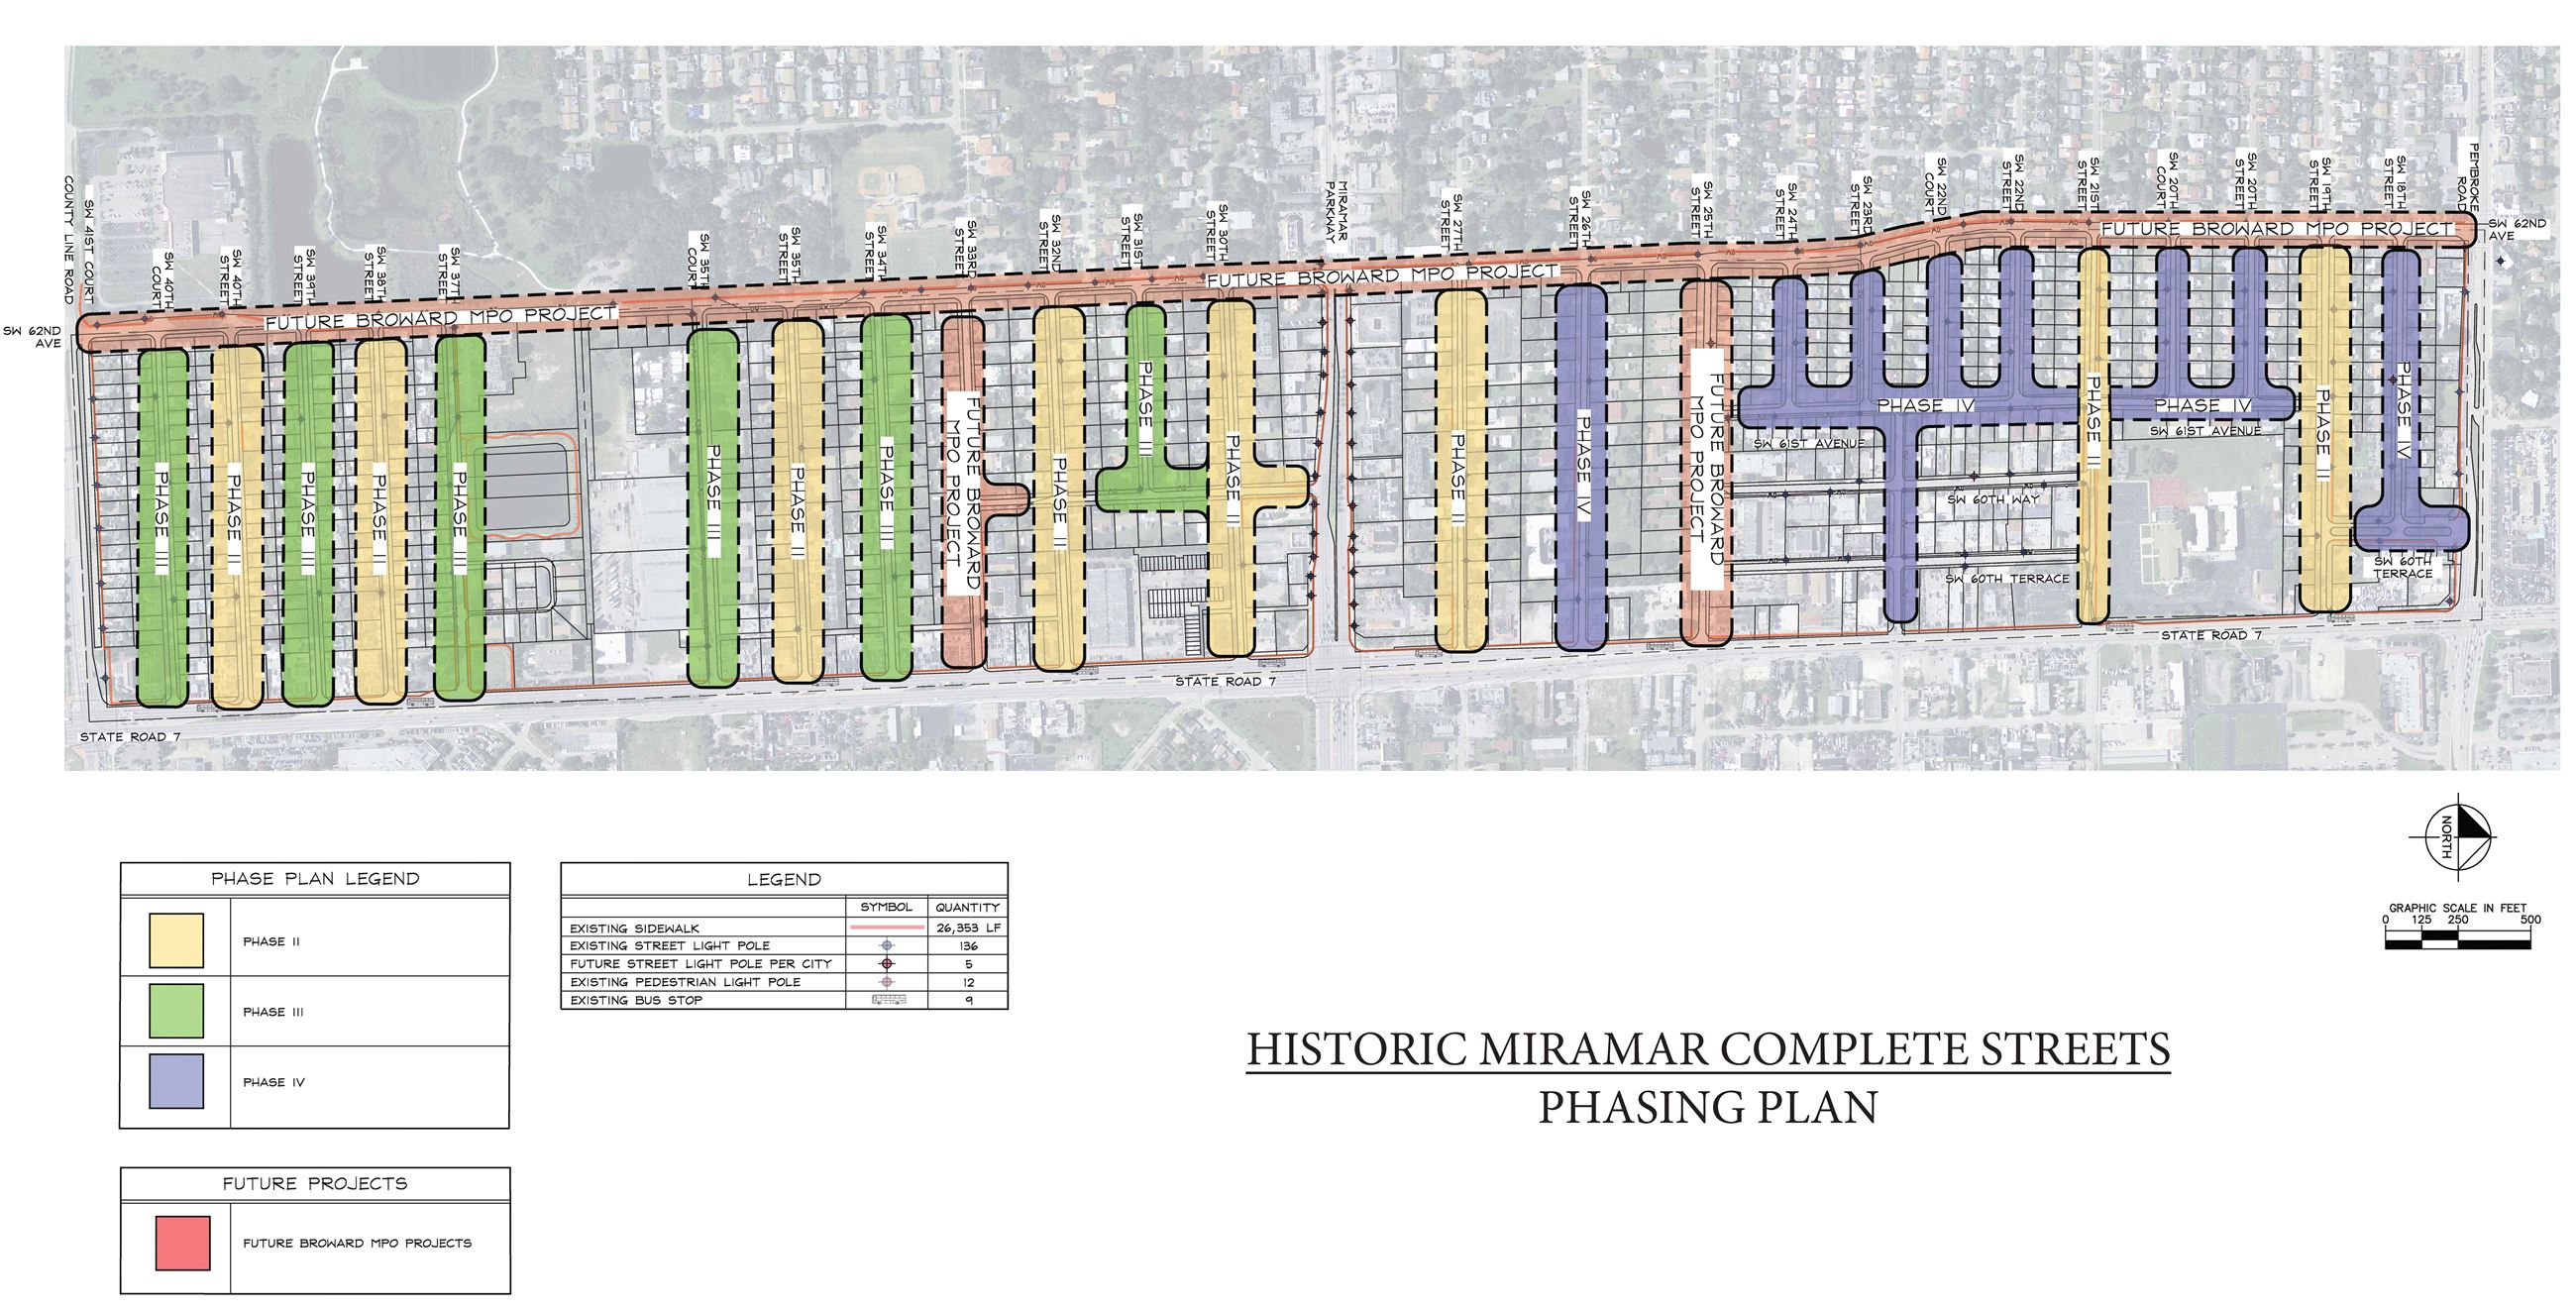 Historic Miramar Complete Streets Phasing Plan